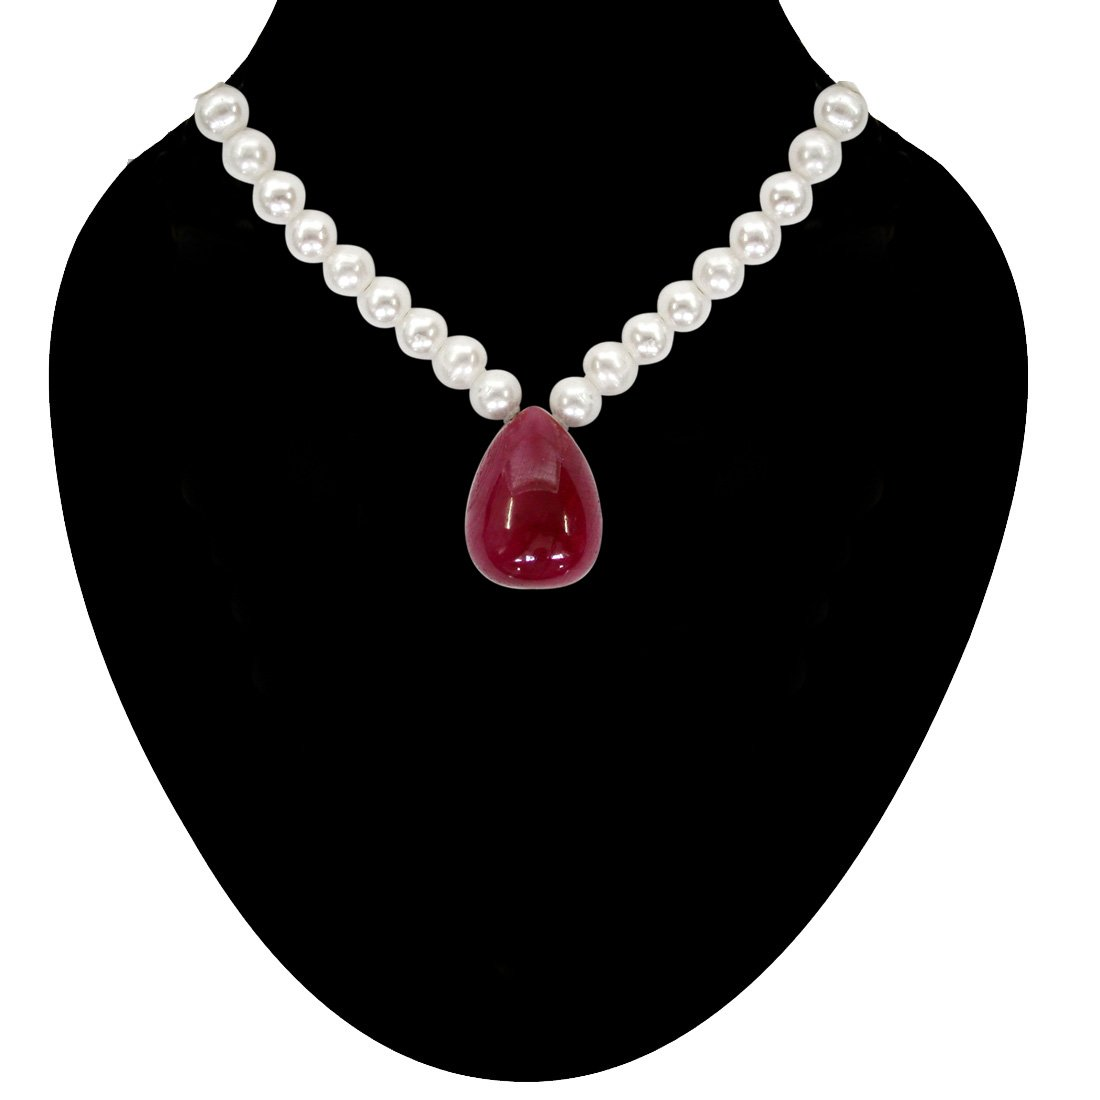 10.50 cts Real Drop Ruby and Freshwater Pearl Necklace for Women (SN129-10.5cts)